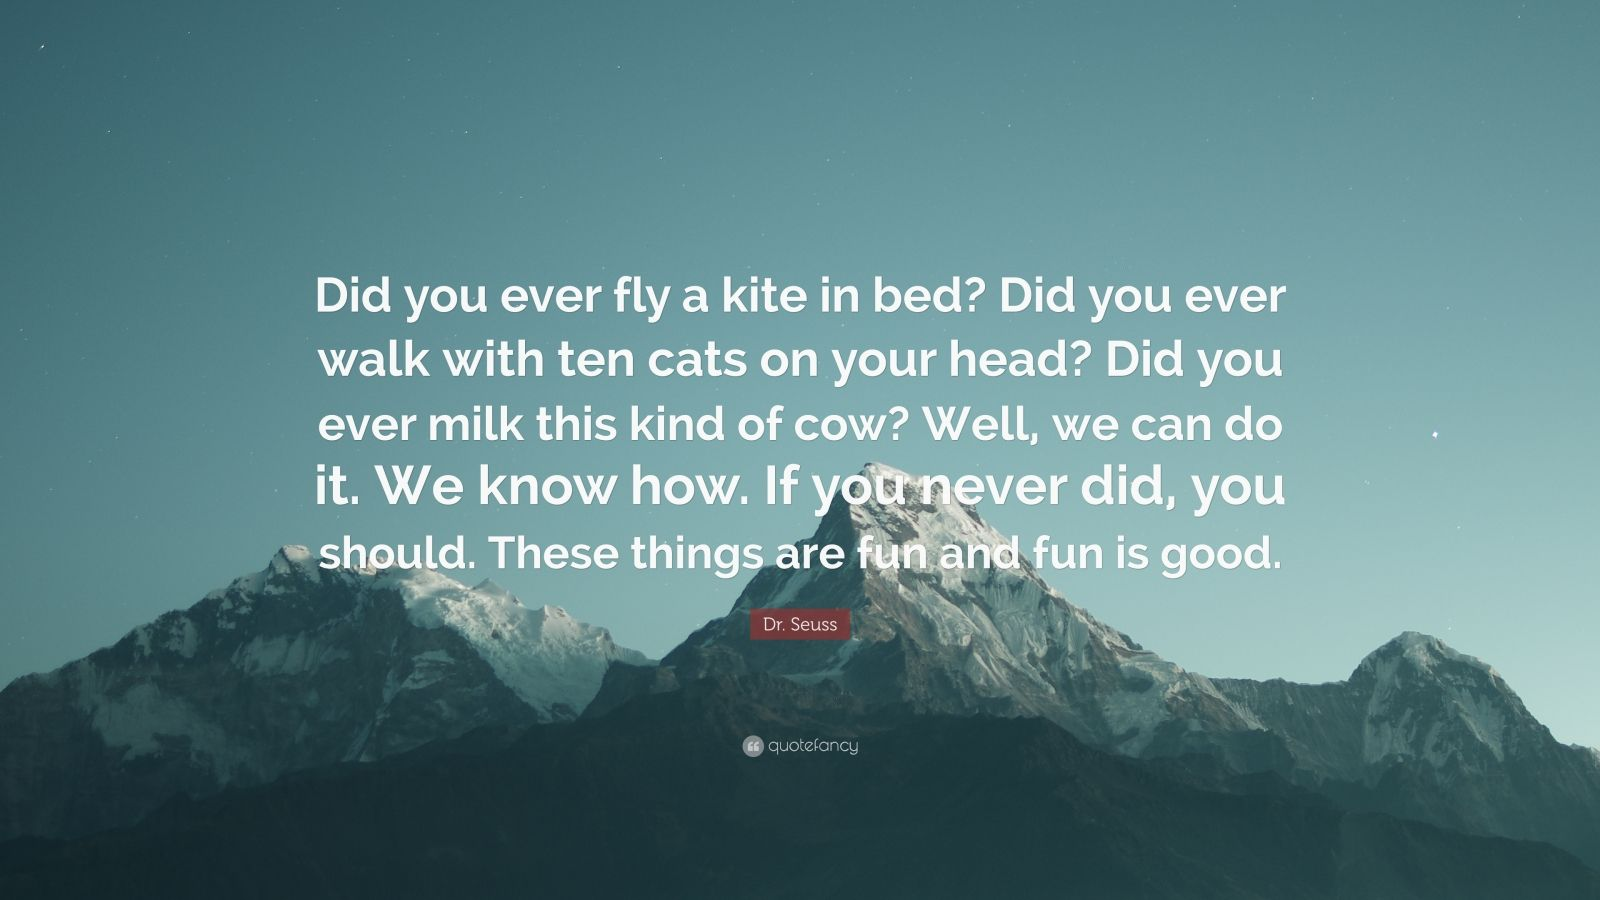 "Dr. Seuss Quote: ""Did you ever fly a kite in bed? Did you ever walk with ten cats on your head? Did you ever milk this kind of cow? Well, we can do it. We know how. If you never did, you should. These things are fun and fun is good."""